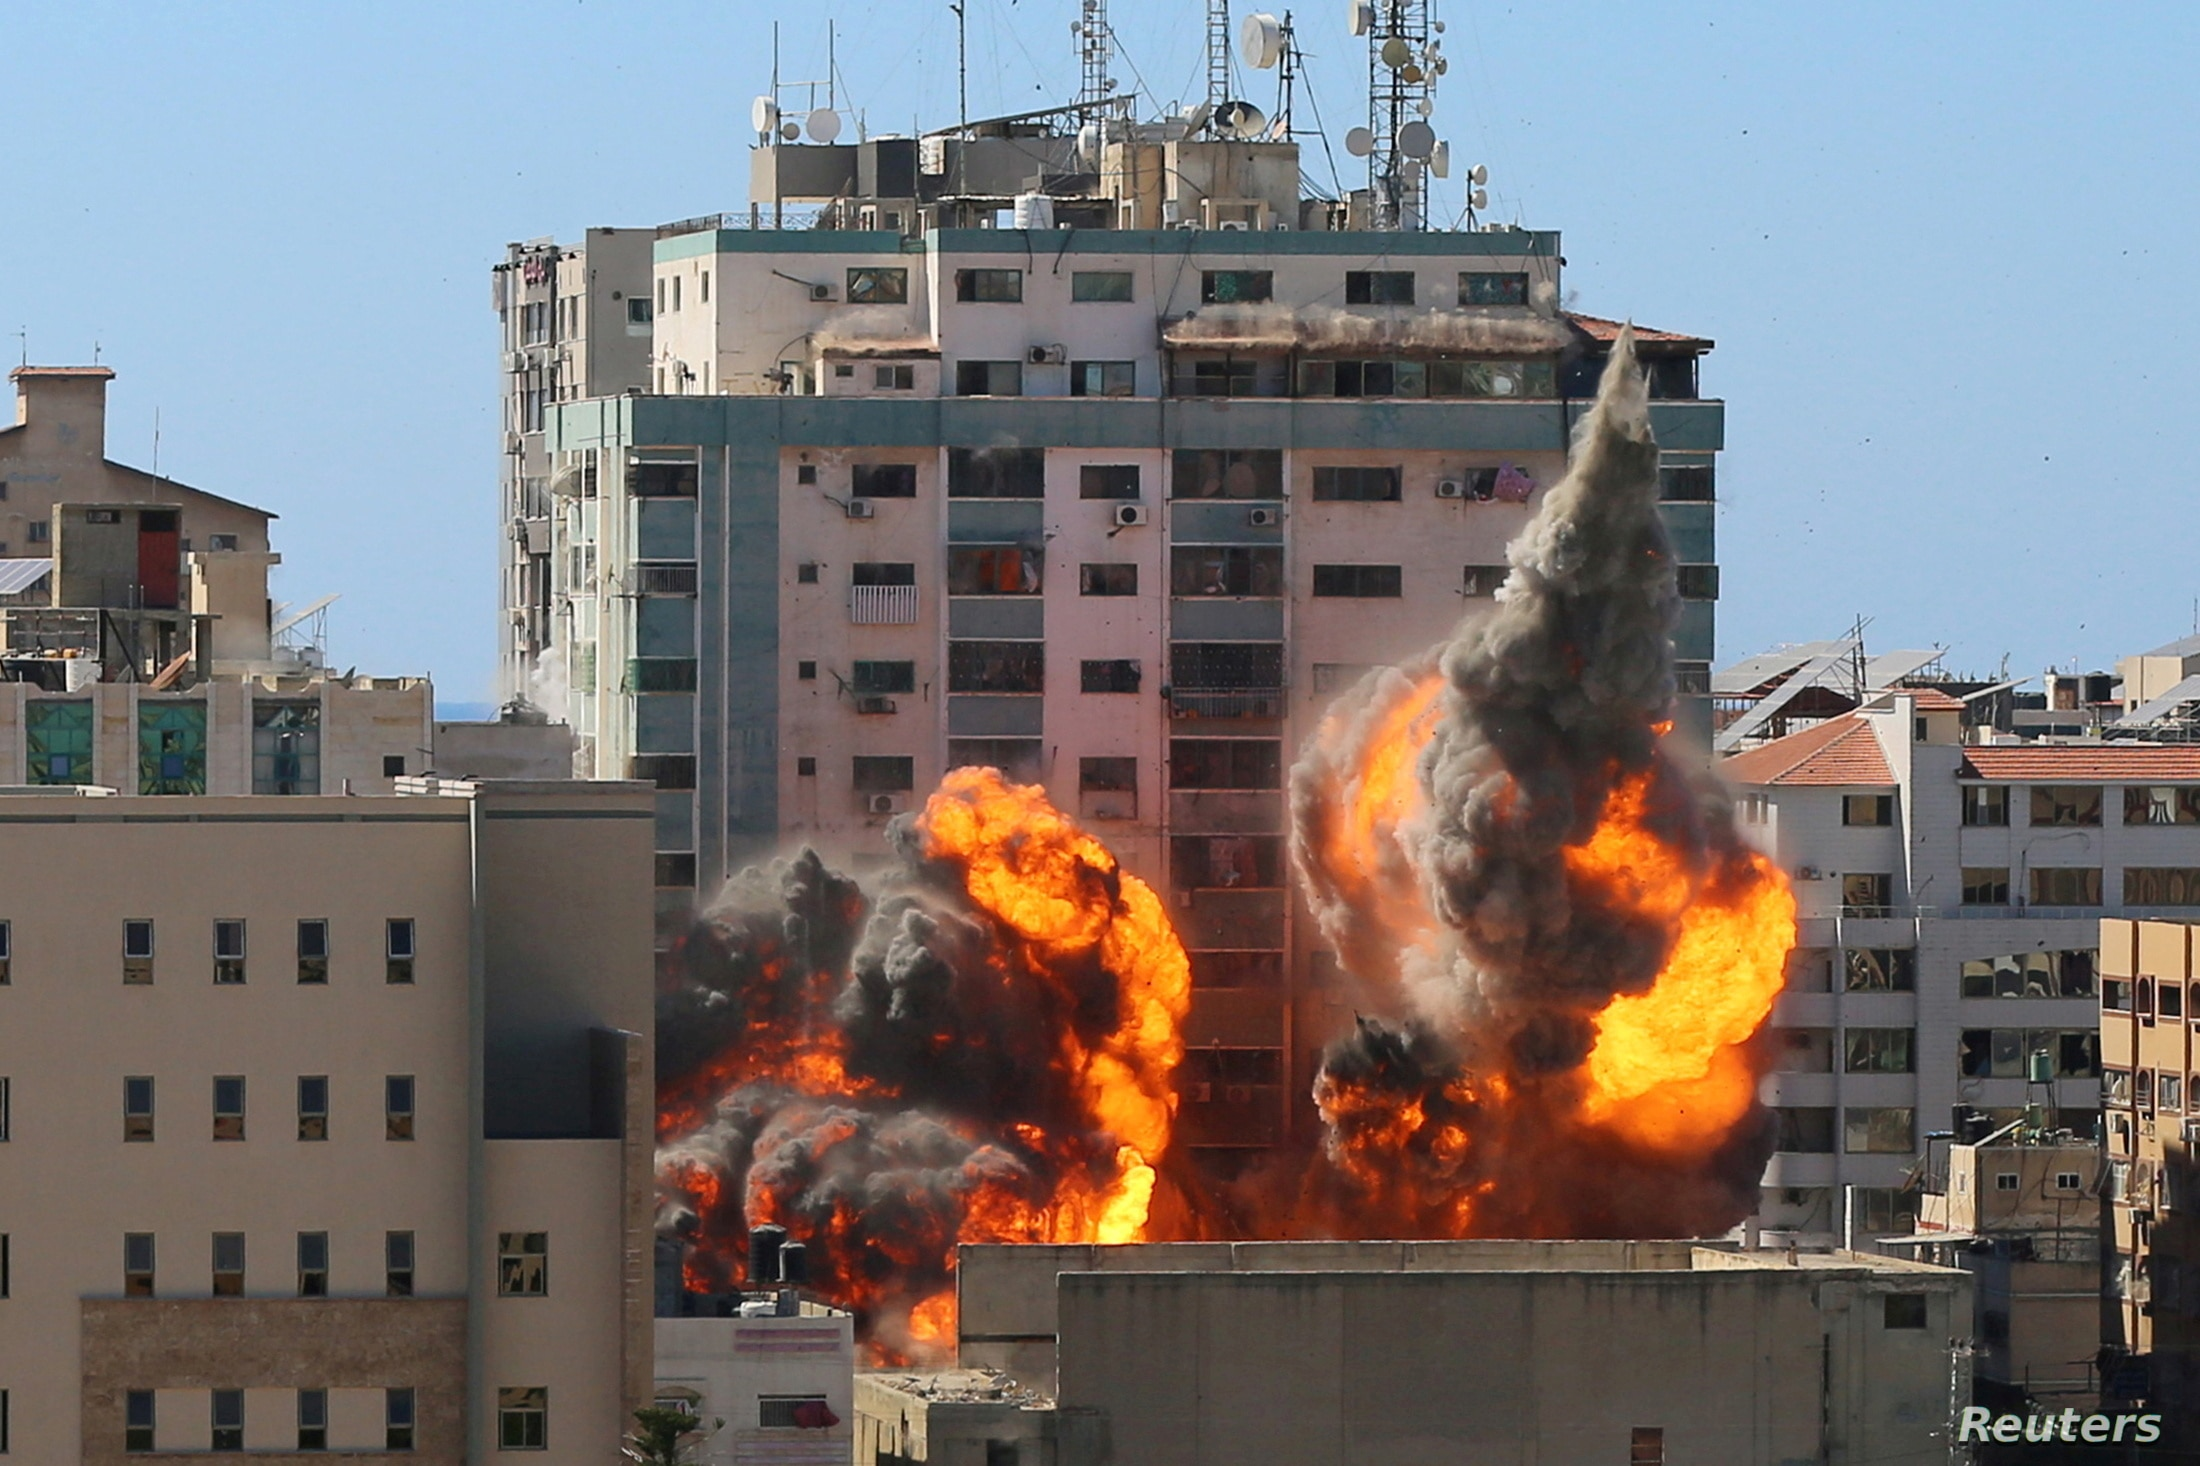 Reporters Without Borders Asks ICC to Investigate Israel's Bombing of Building Housing AP Journalists